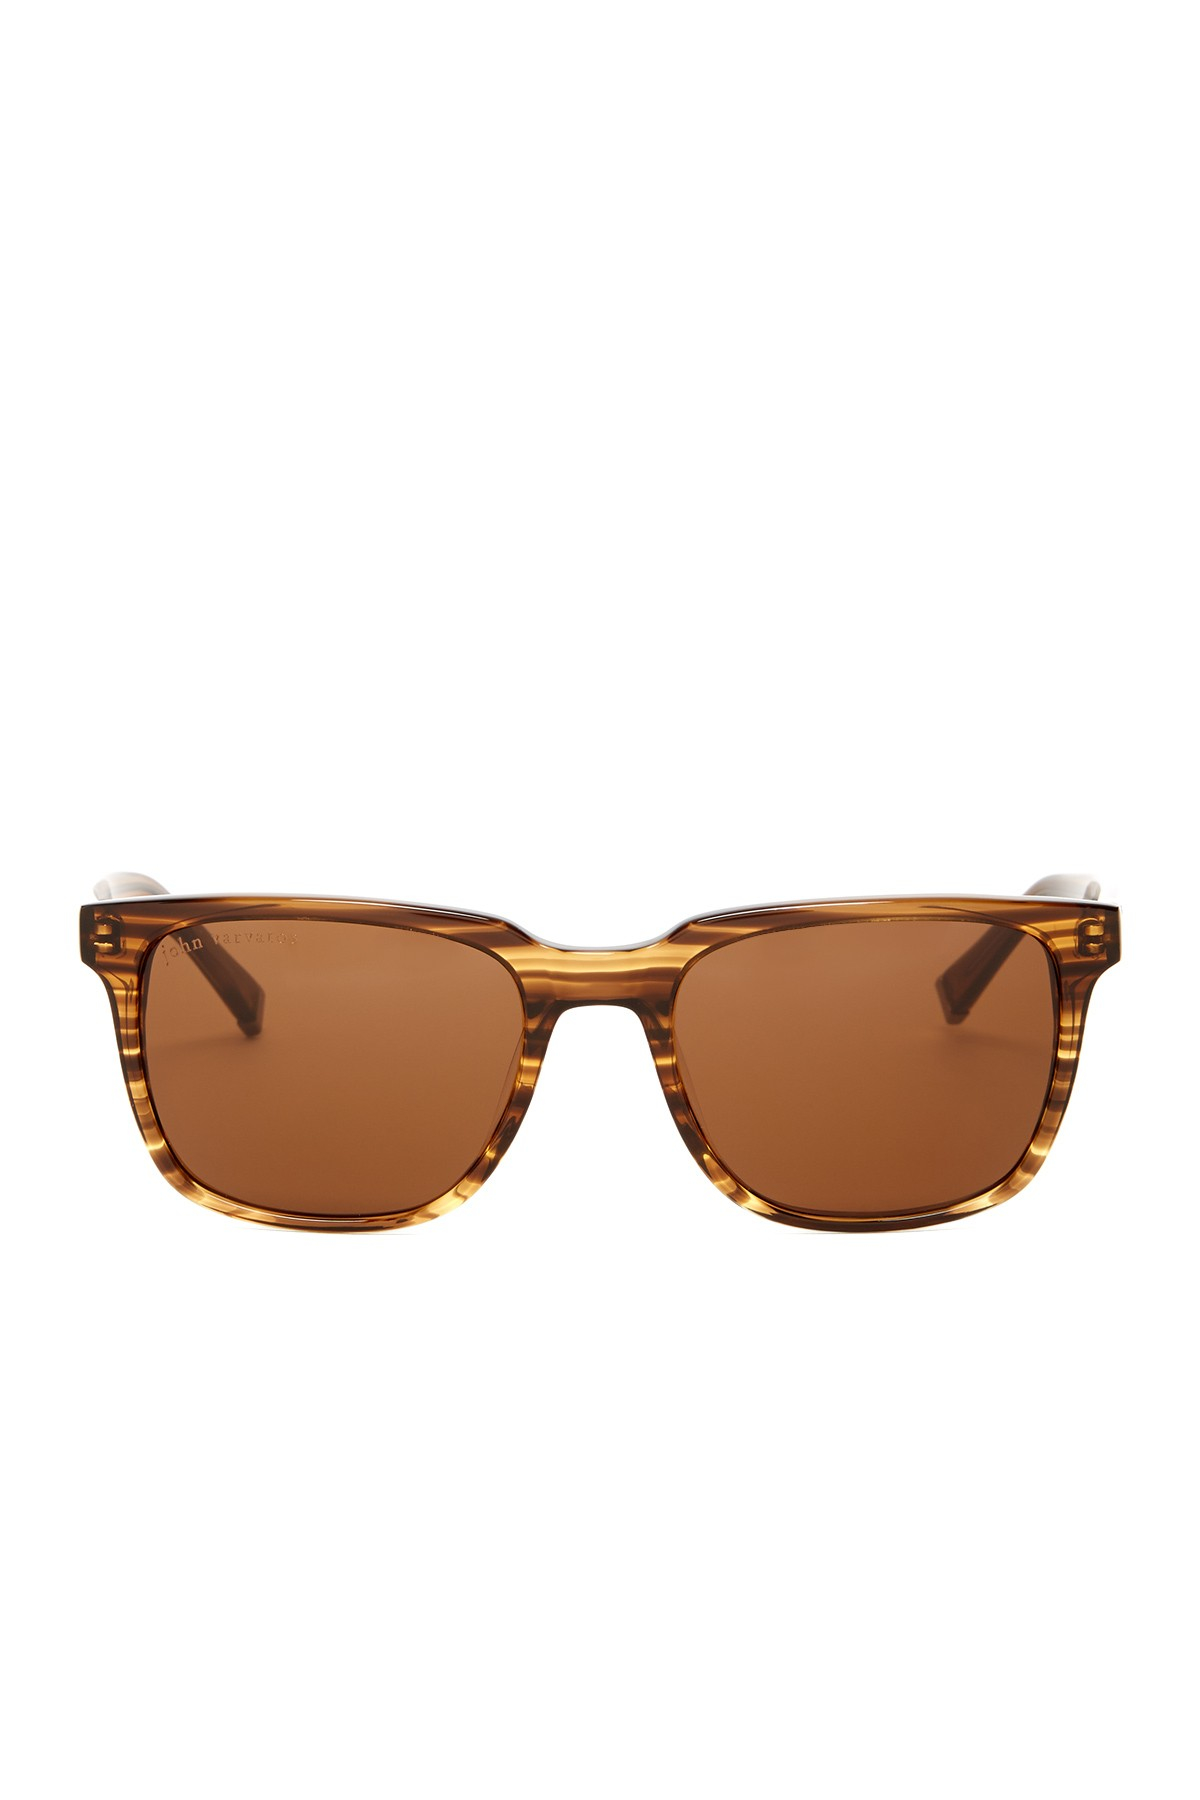 Shop eBay for great deals on Brown Sunglasses for Men. You'll find new or used products in Brown Sunglasses for Men on eBay. Free shipping on selected items.